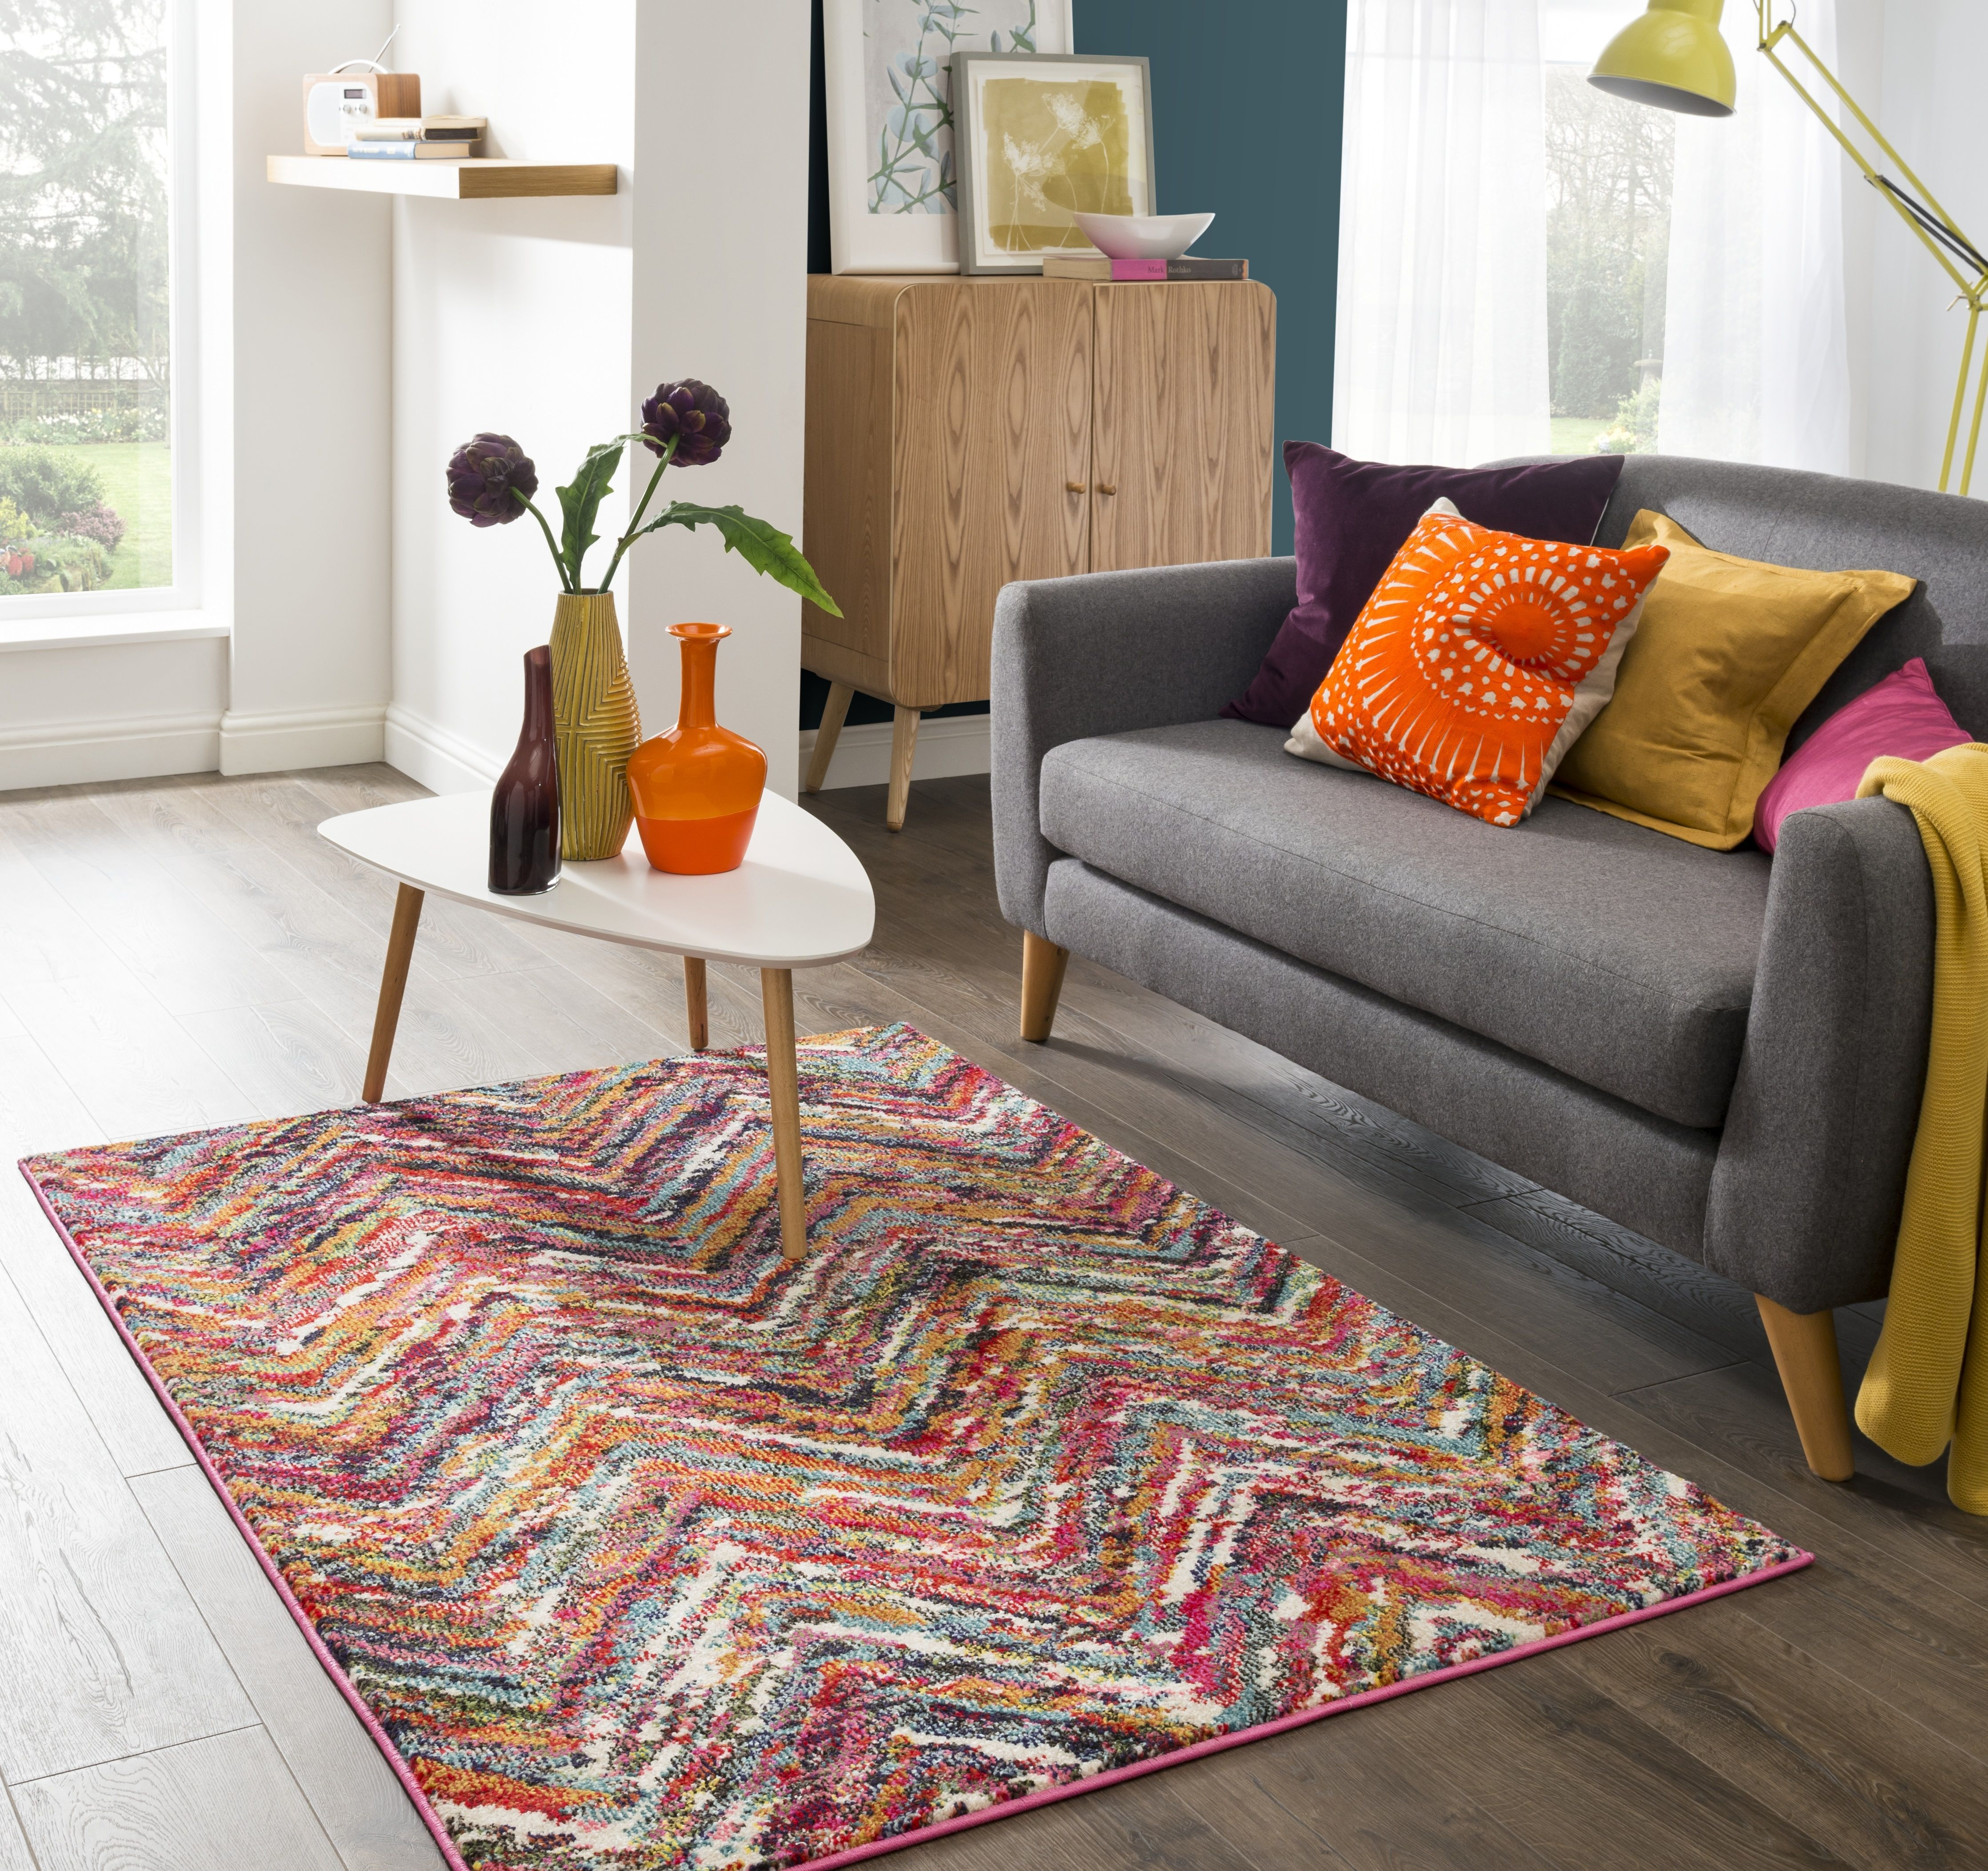 Pin by Carpetright on Our latest rugs Rugs, Modern rugs